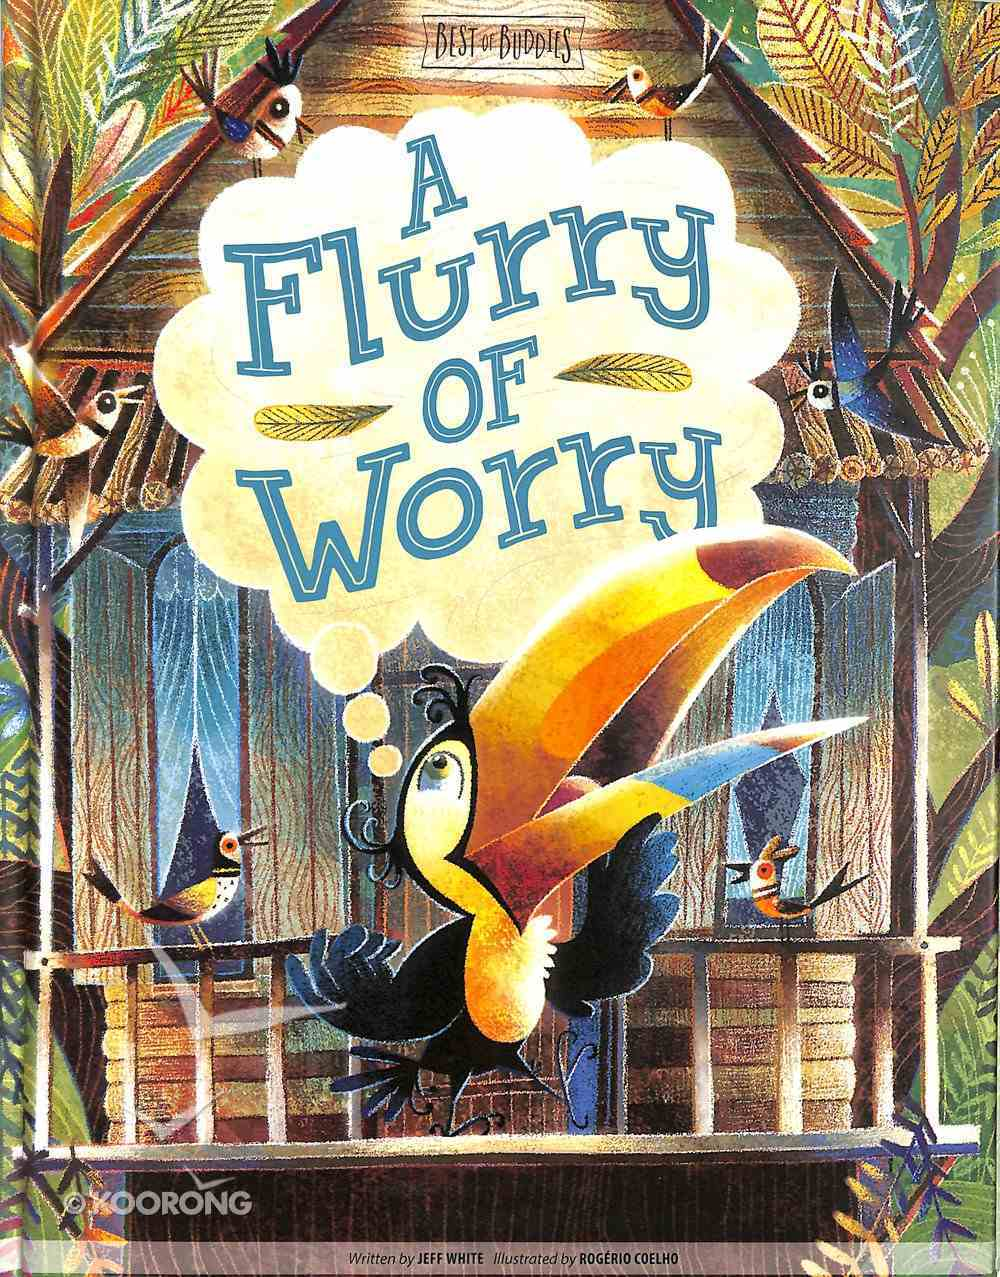 A Flurry of Worry (Best Of Buddies Series) Hardback